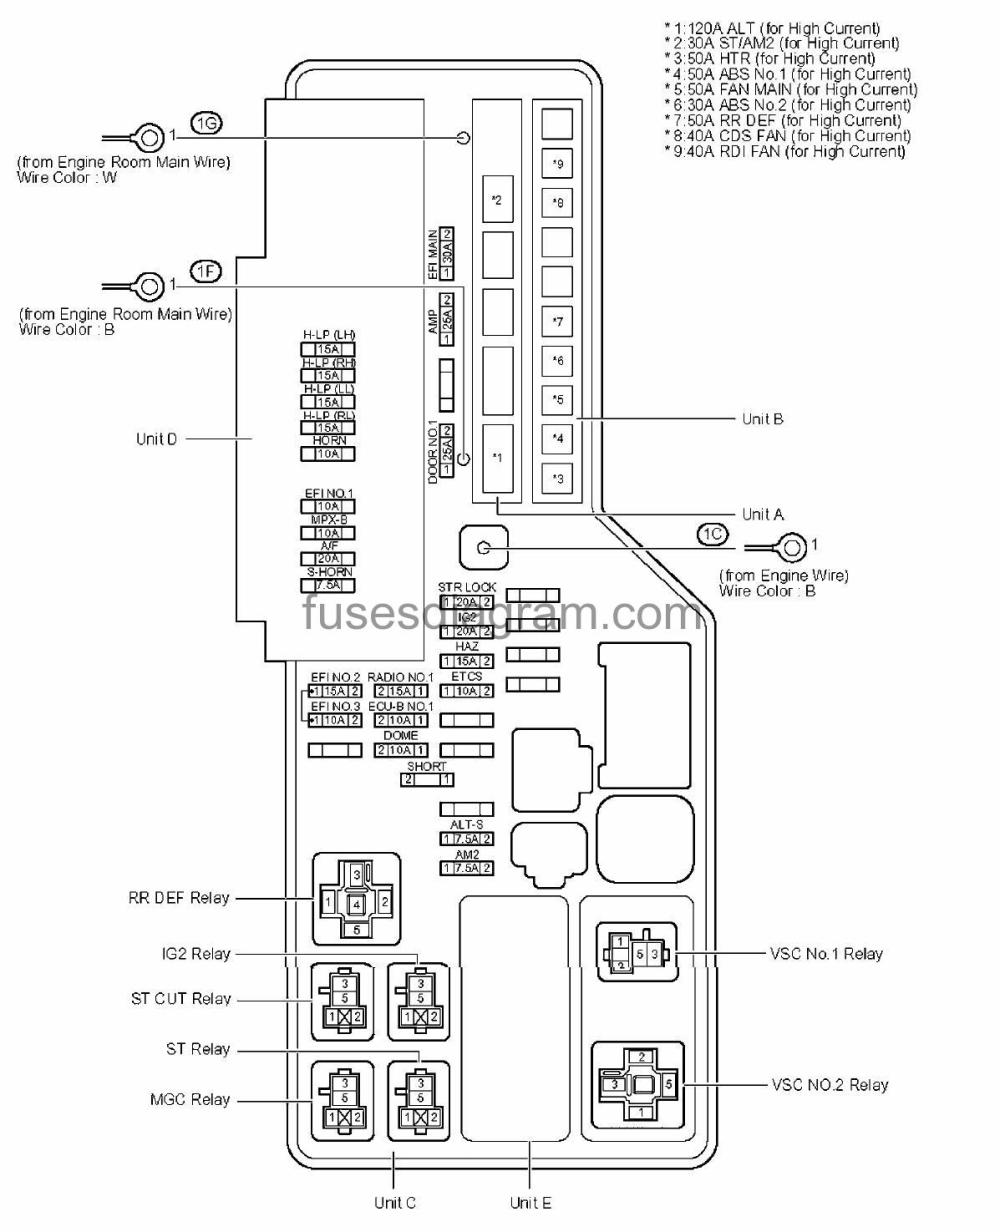 medium resolution of 01 camry wiring diagram wiring diagram centre 2001 camry radio wiring diagrams 01 camry wiring diagram